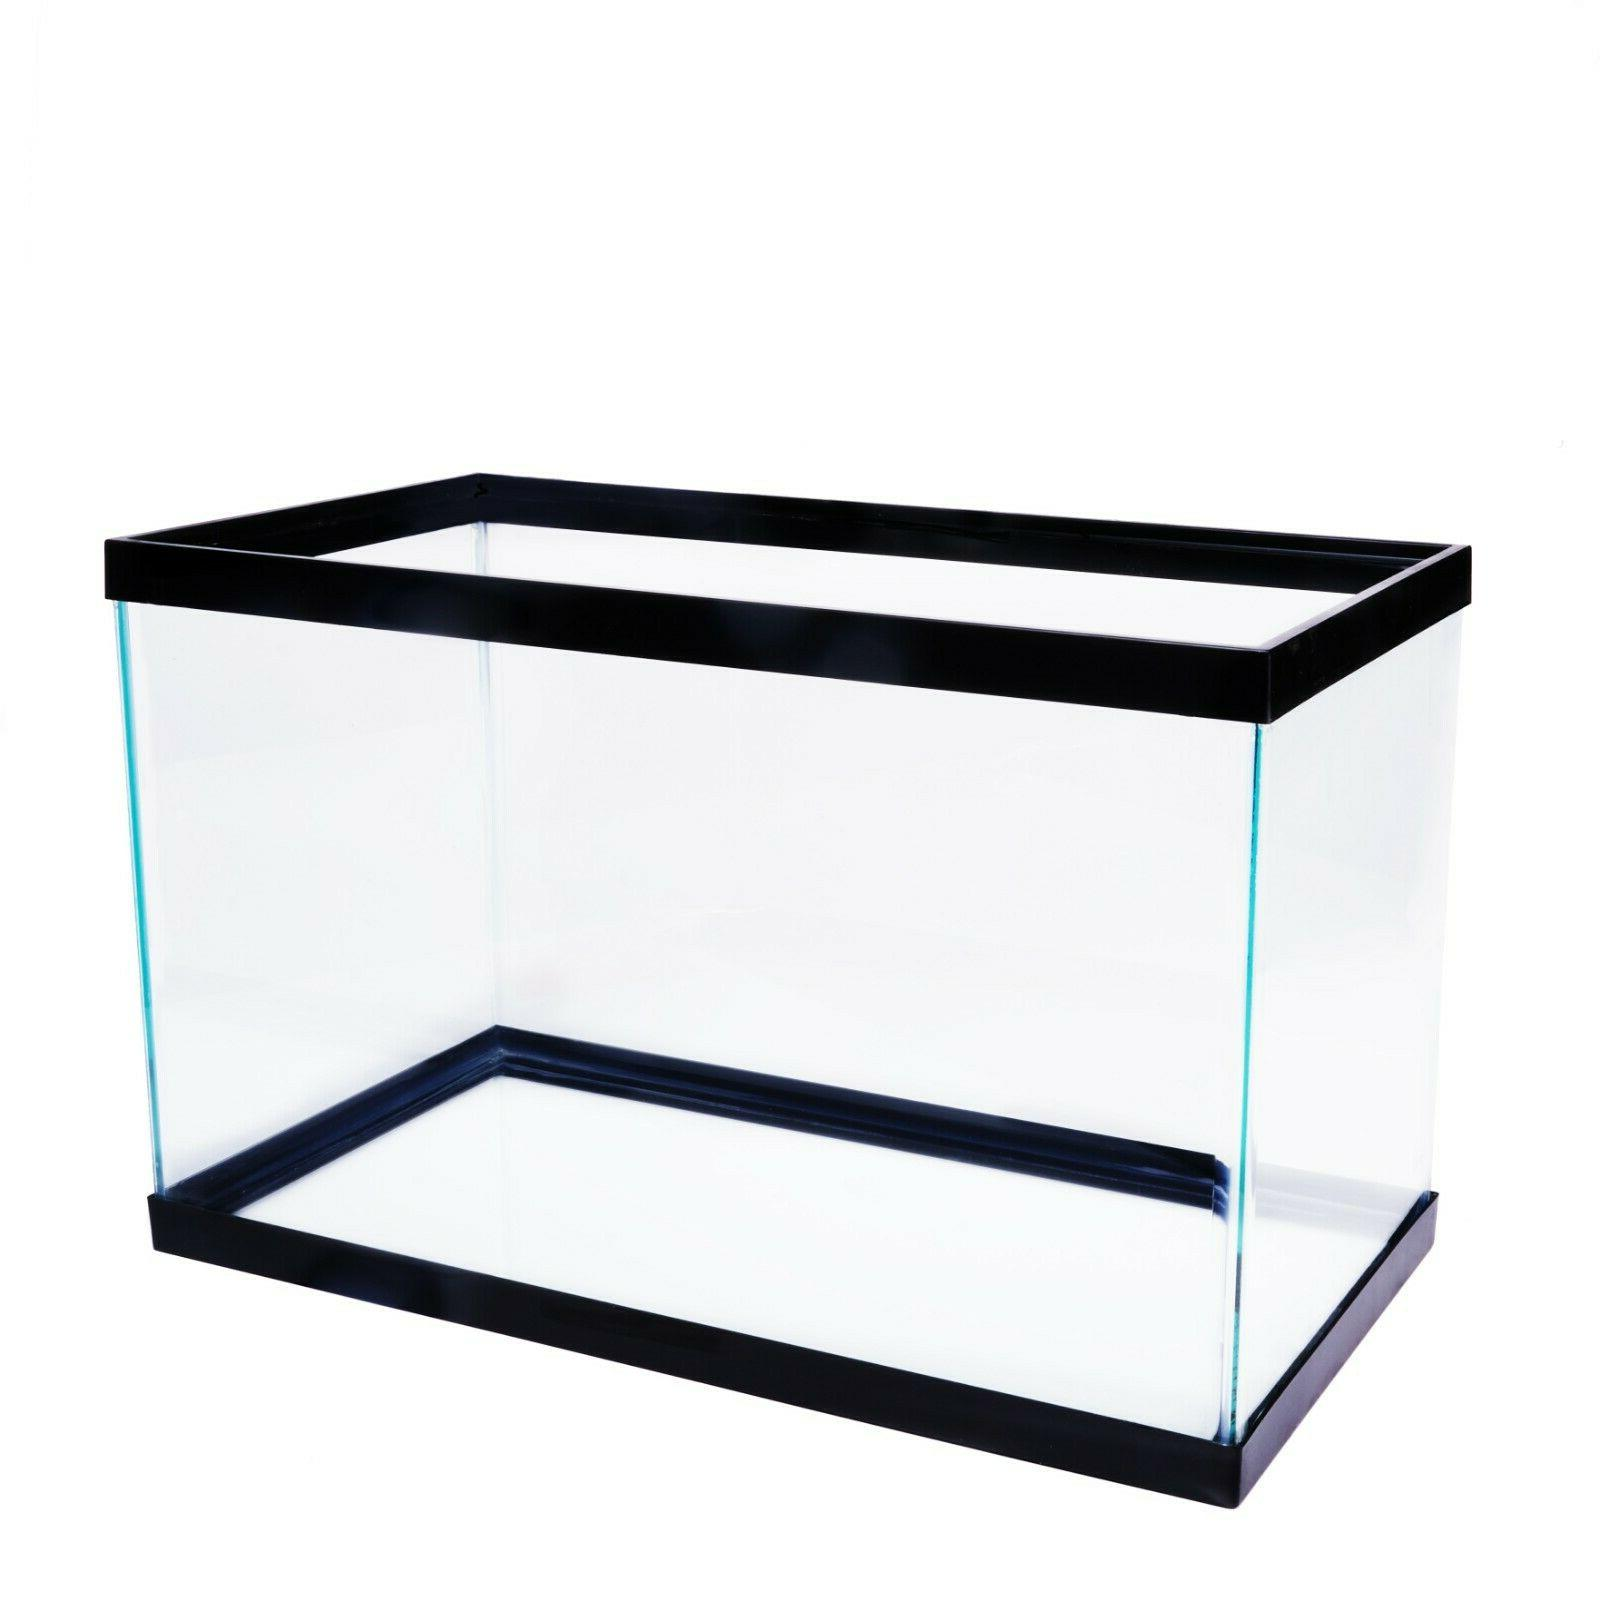 Fish Tank Aquarium 2 10 Gallon Clear Glass Home Drum Bowl Aq